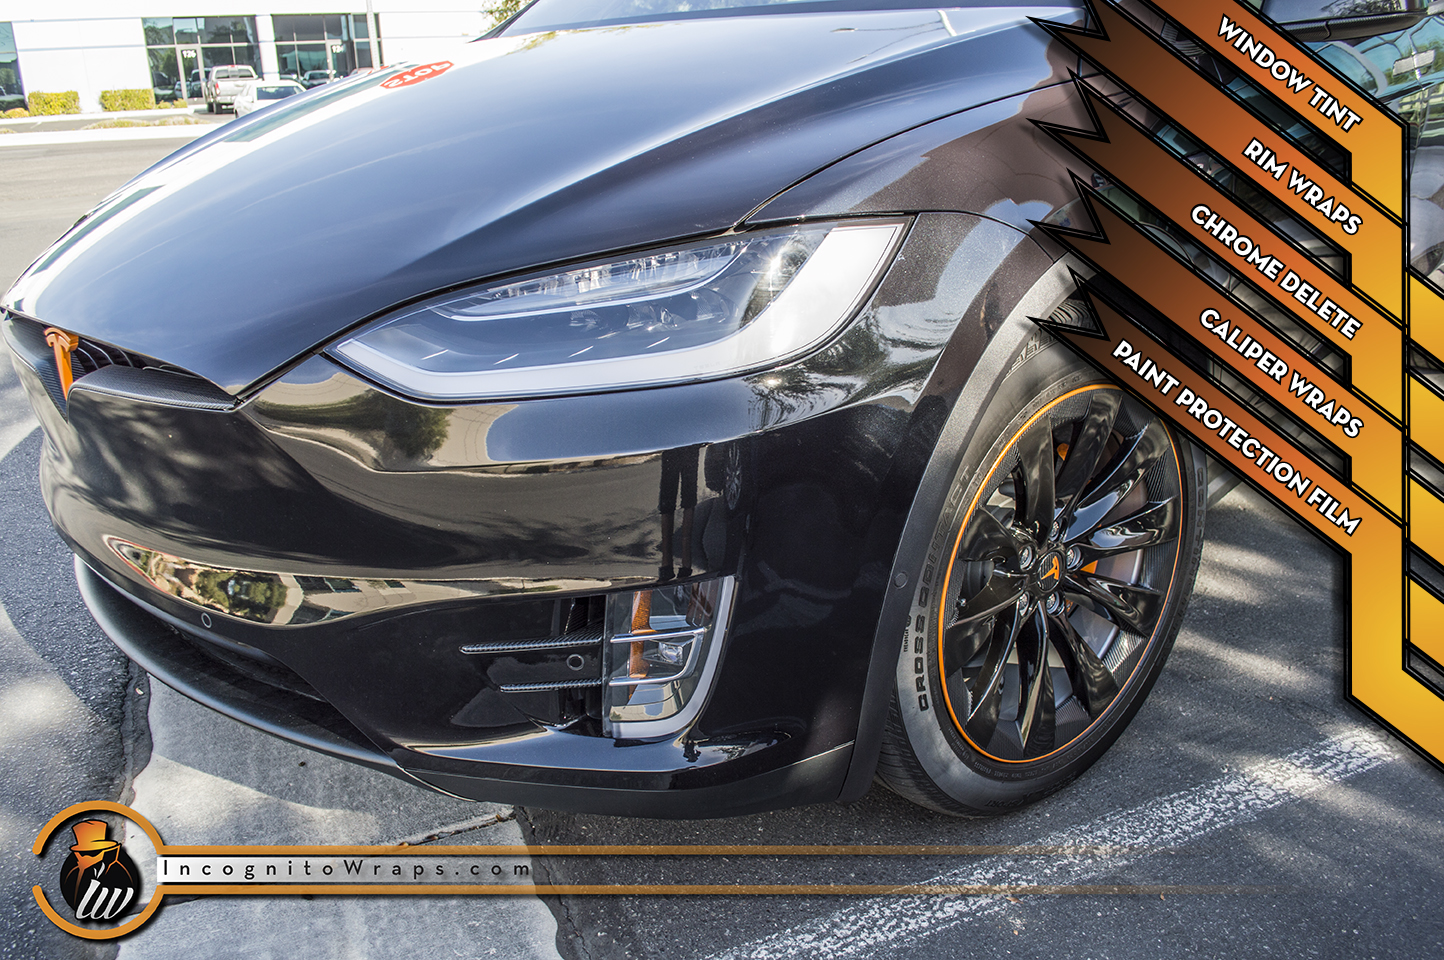 Tesla Model X - Carbon Fiber Chrome Delete, Wrapped Rims and Caliper Wraps